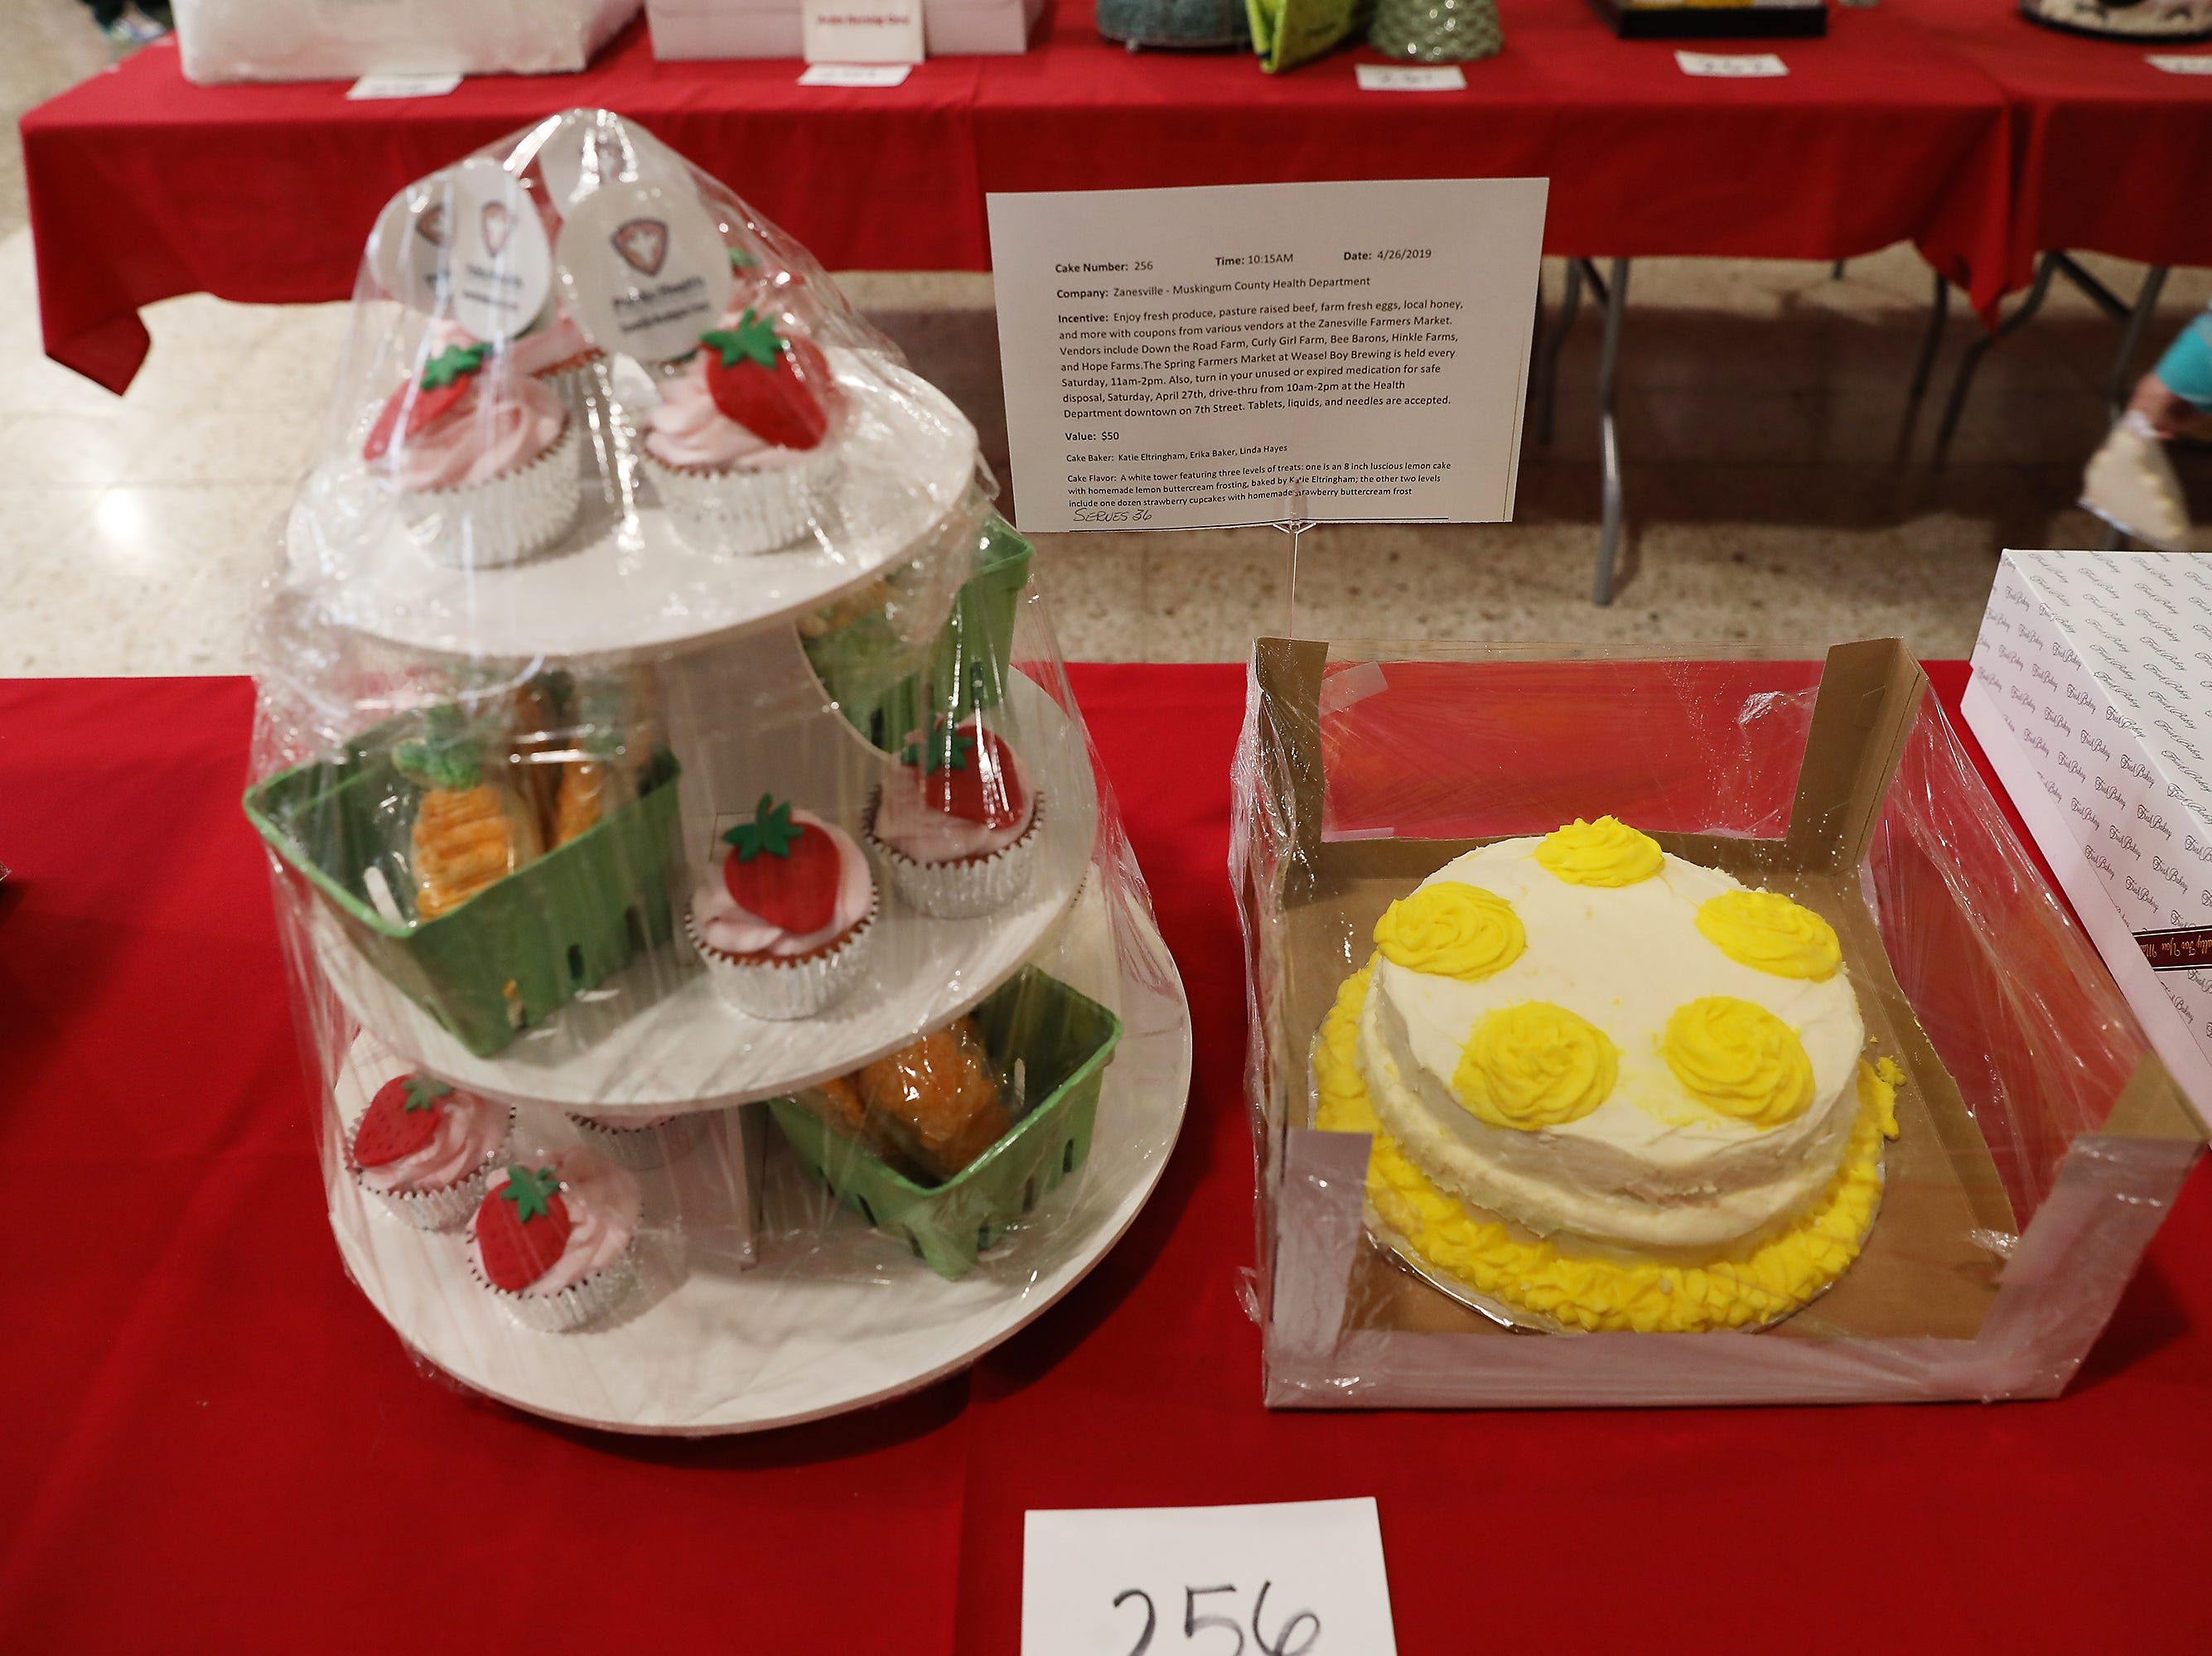 10:15 A.M. Friday cake 256 Zanesville-Muskingum County Health Department - coupons for Zanesville Farmers Market vendors; $50